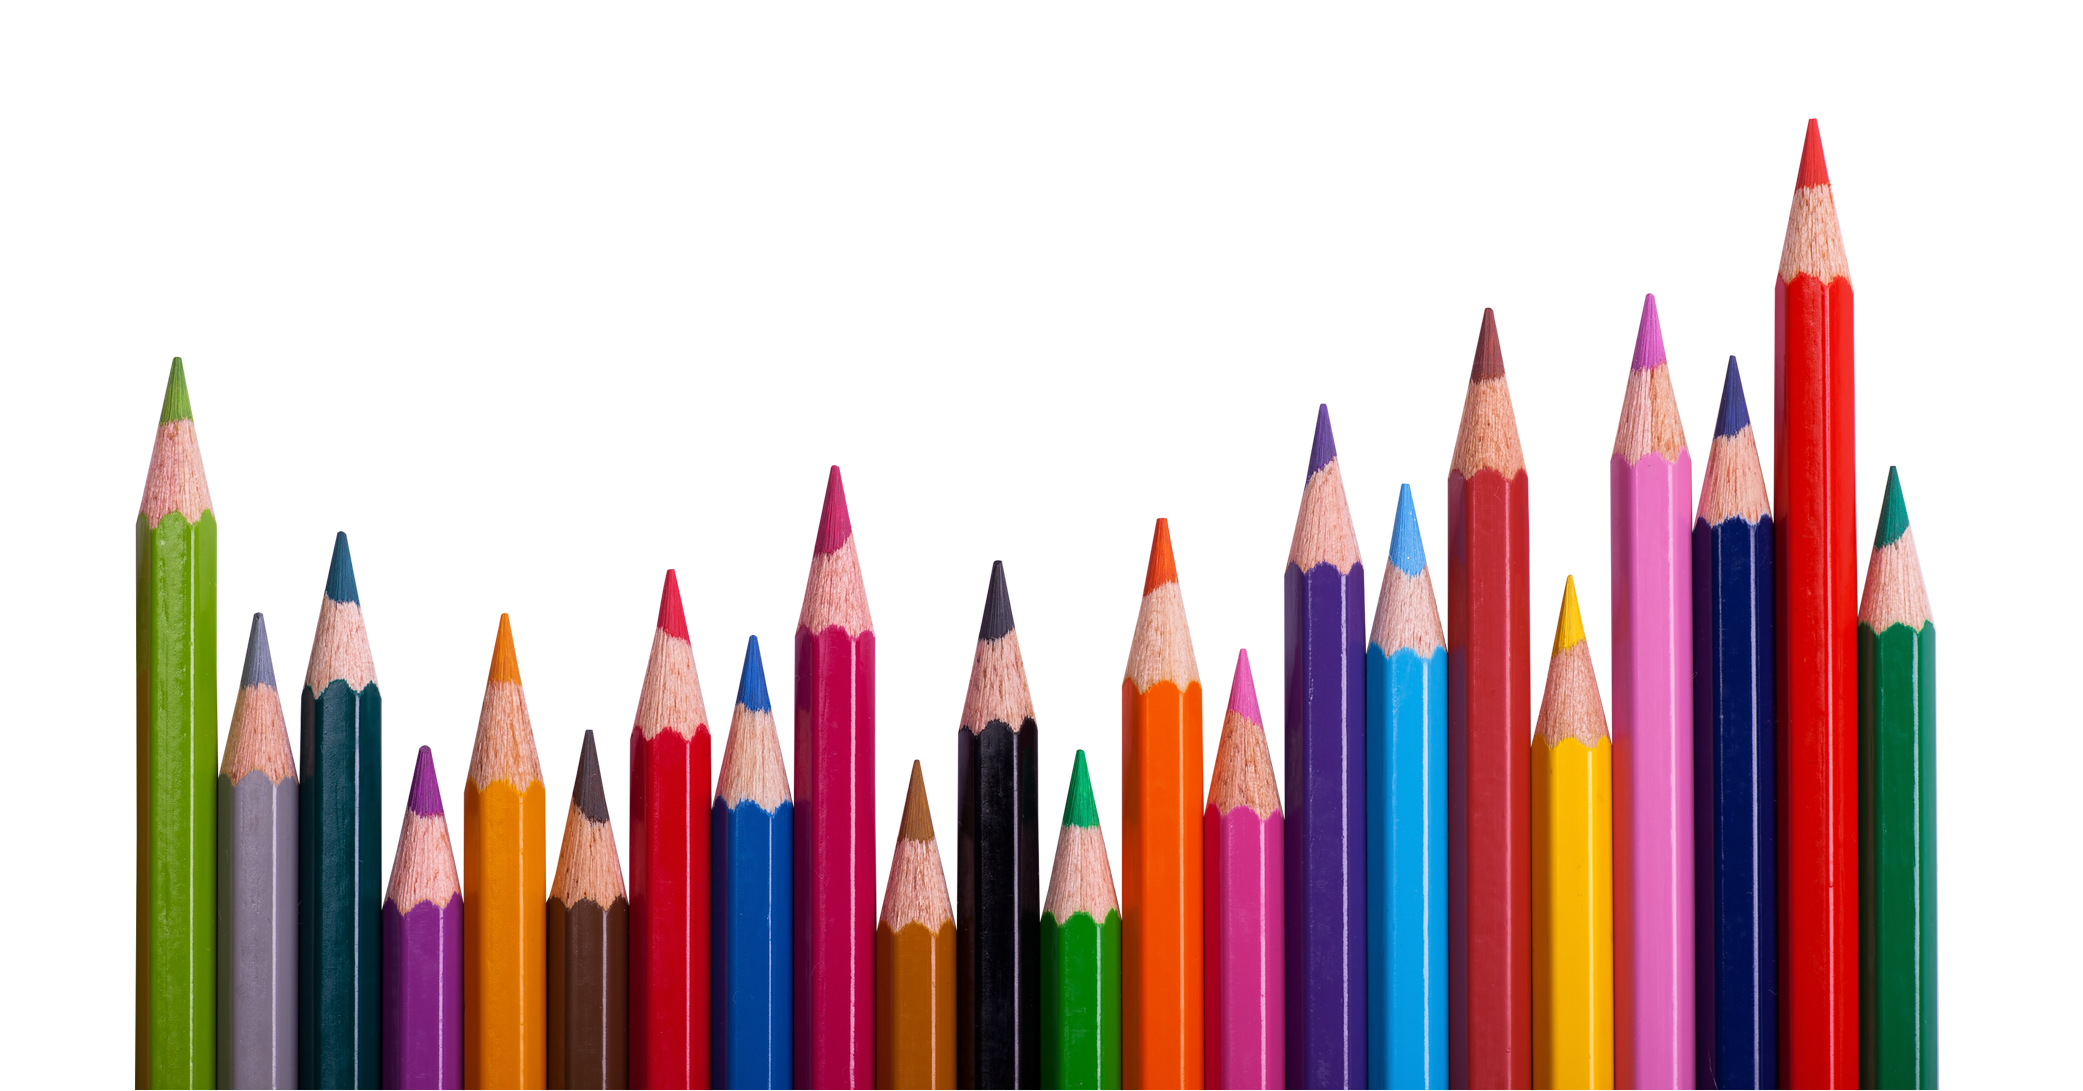 Clipart pencil clear background. Png images transparent free